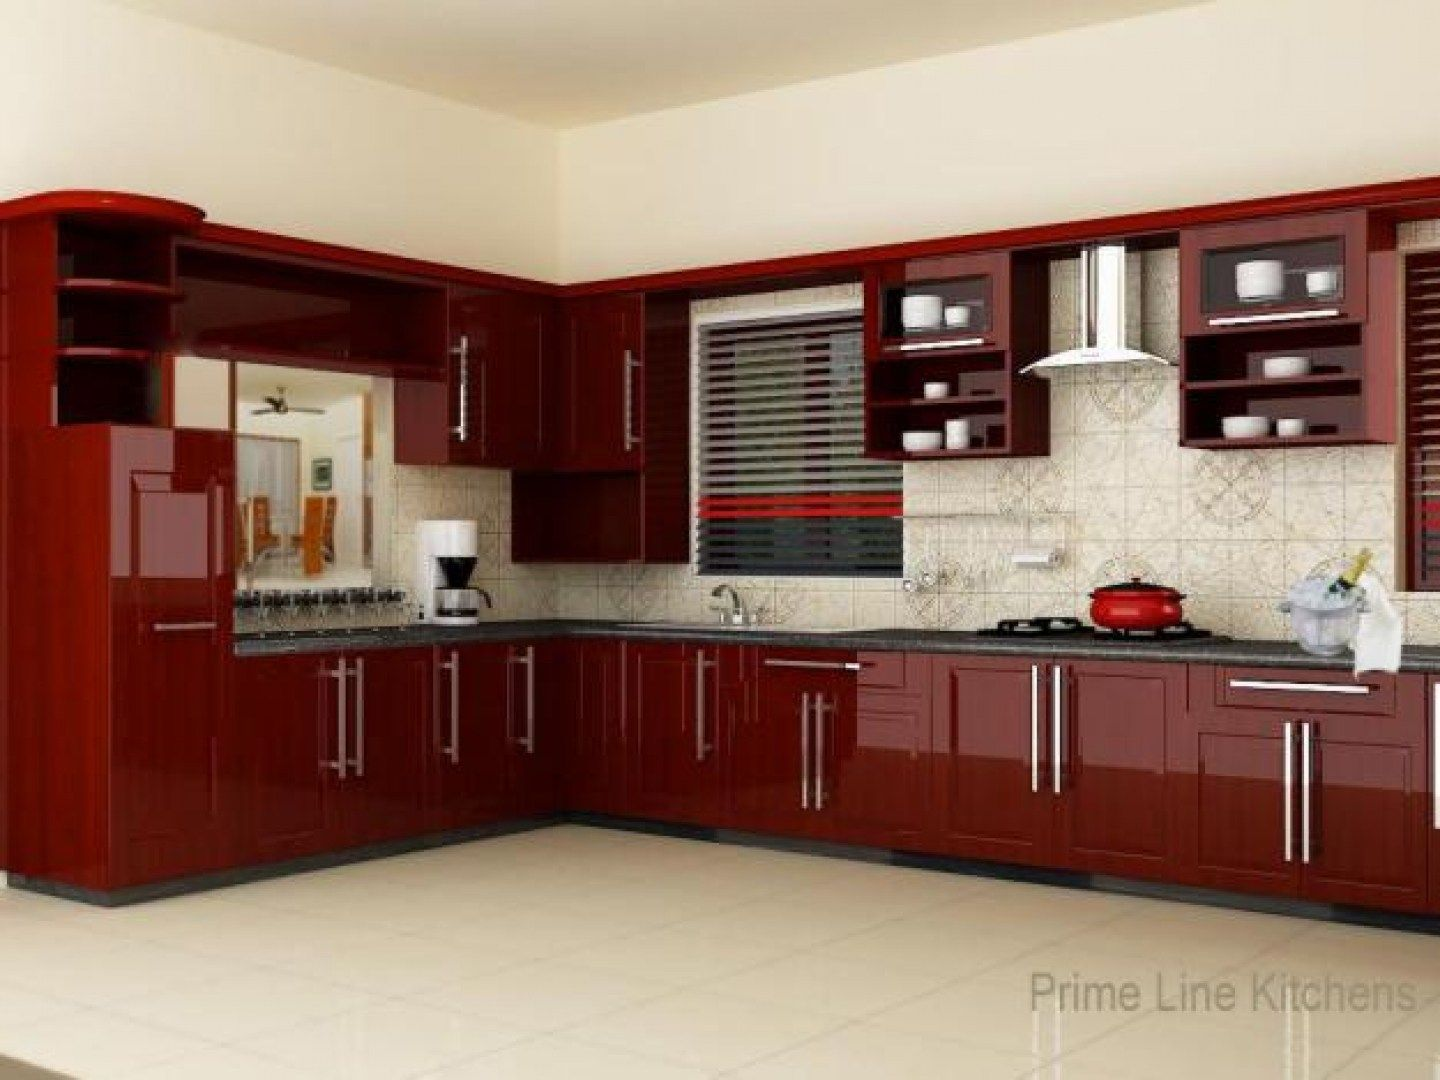 Kitchen design ideas kitchen woodwork designs hyderabad for Modern kitchen units designs